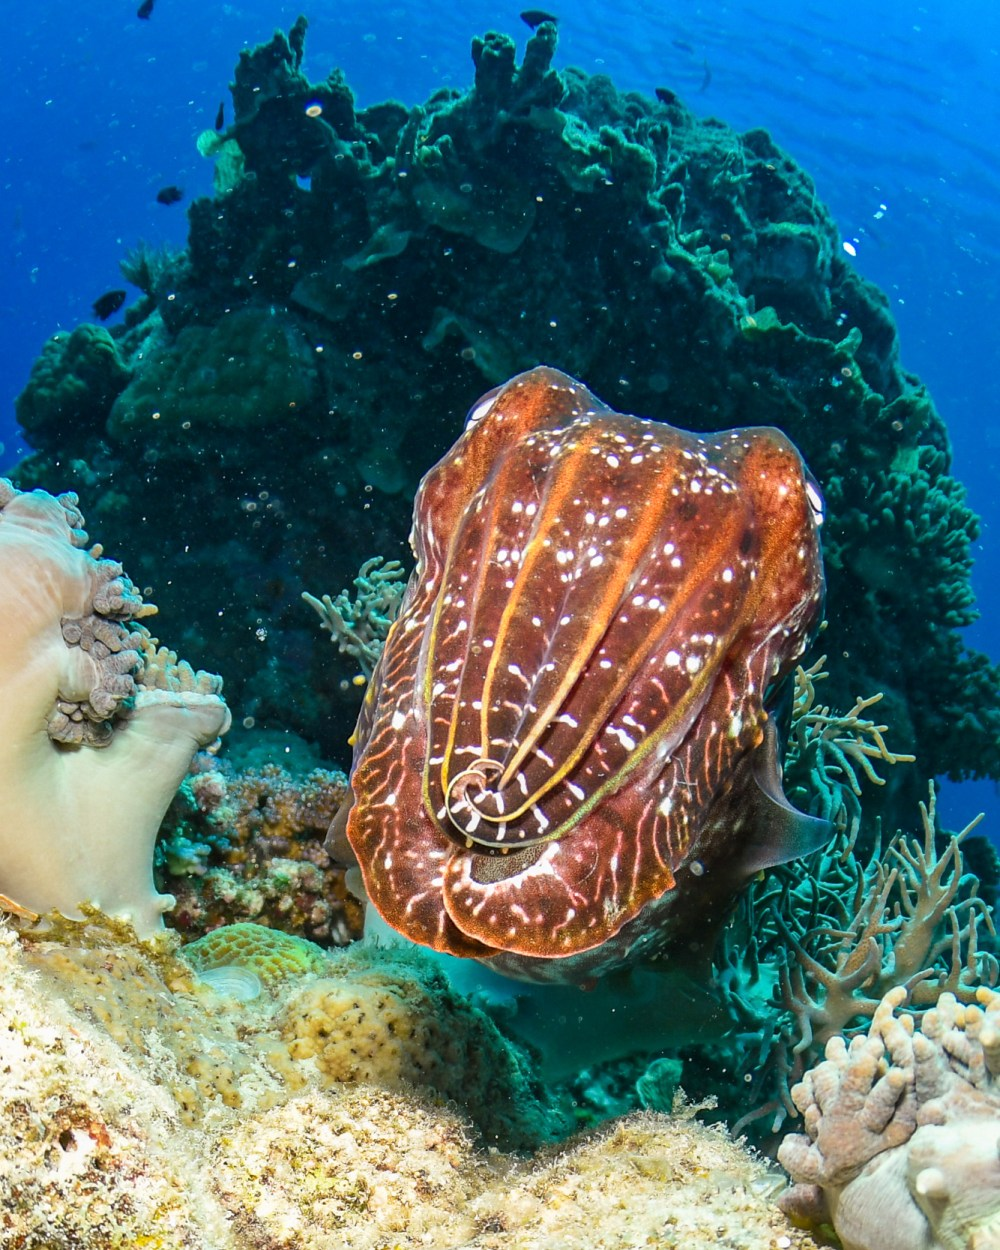 Cuttlefish Great Barrier Reef Cairns Queensland Australia